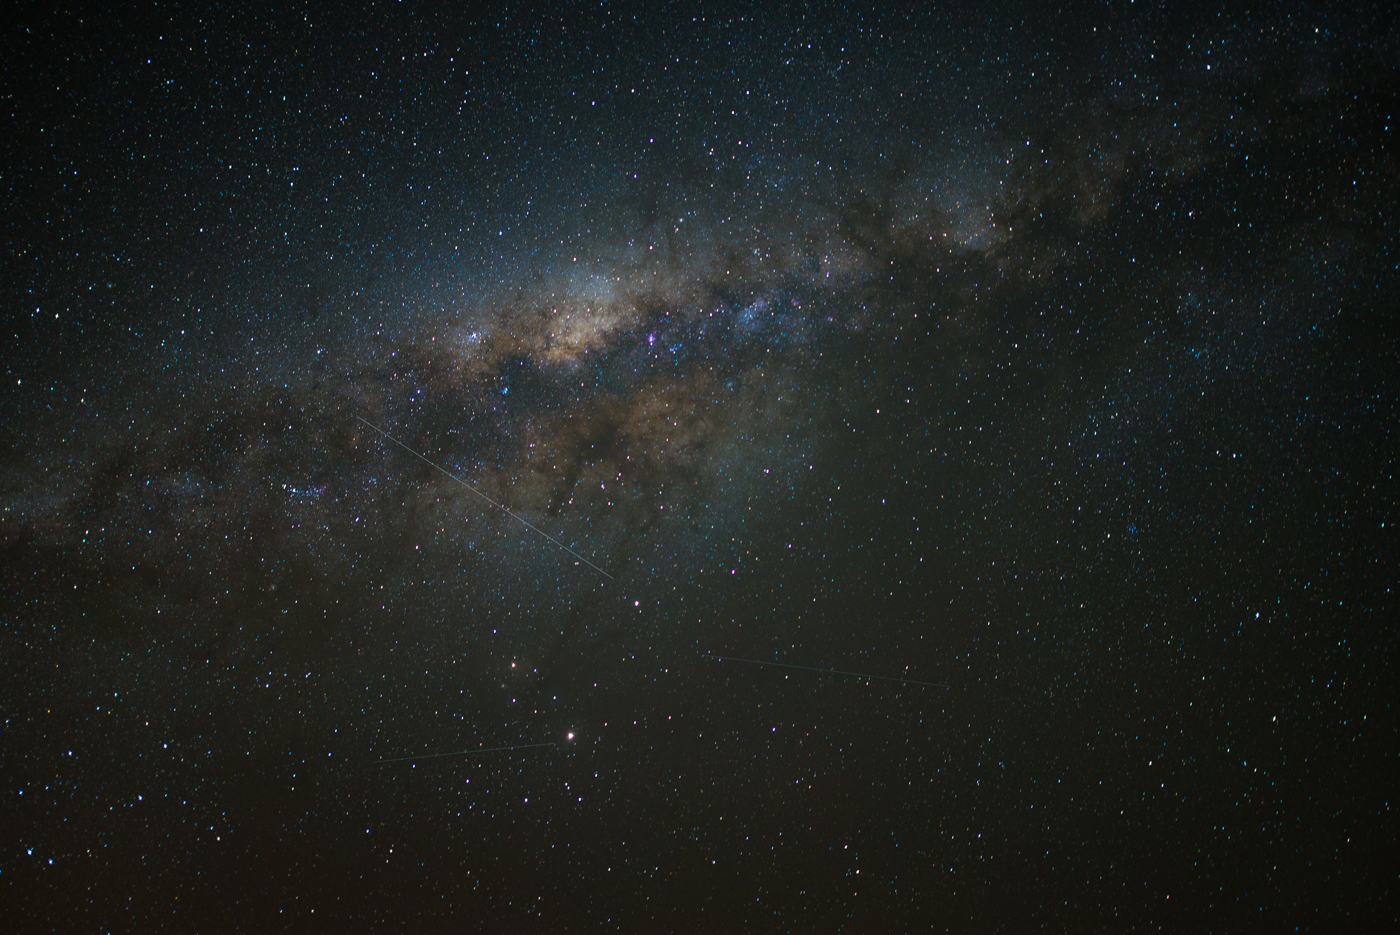 milky way, satellites, SC